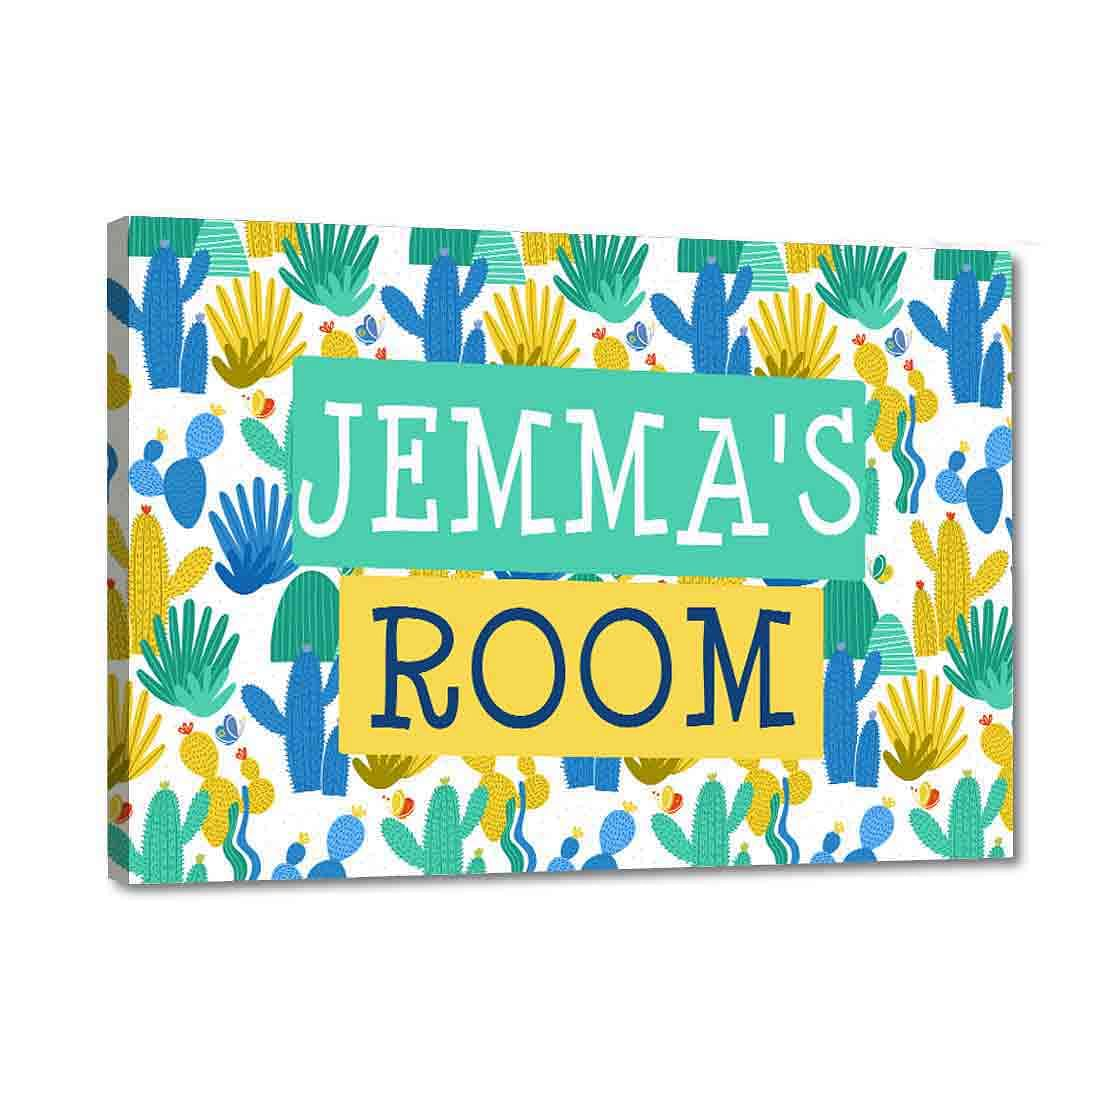 children's name plate